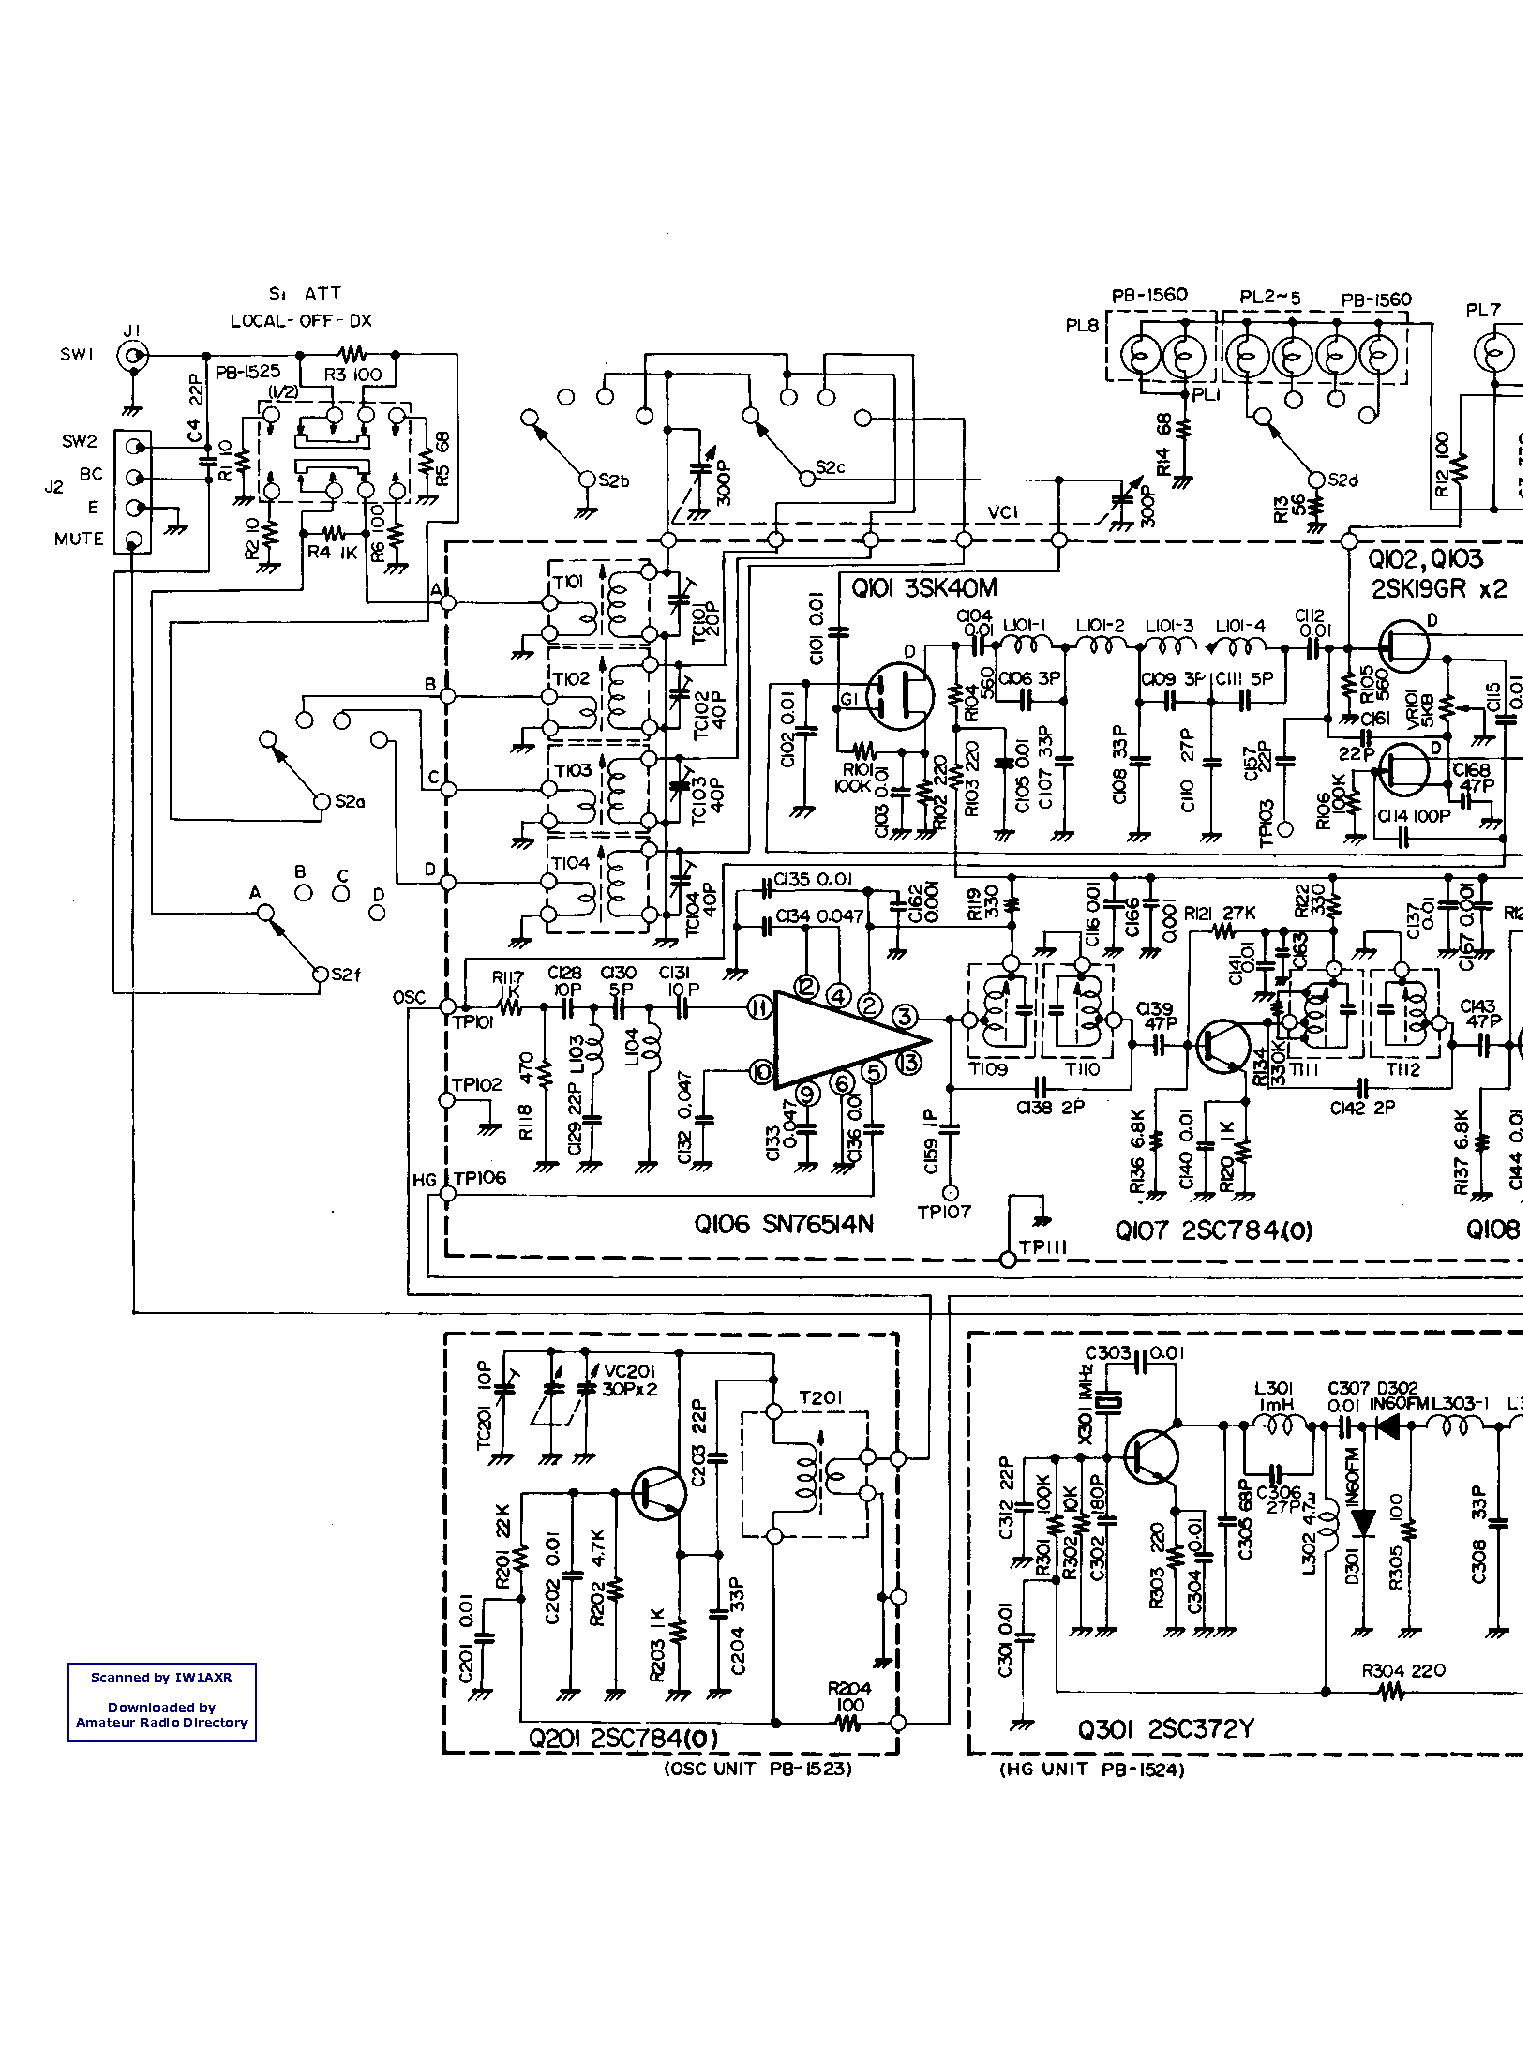 YAESU FT-290R Service Manual download, schematics, eeprom